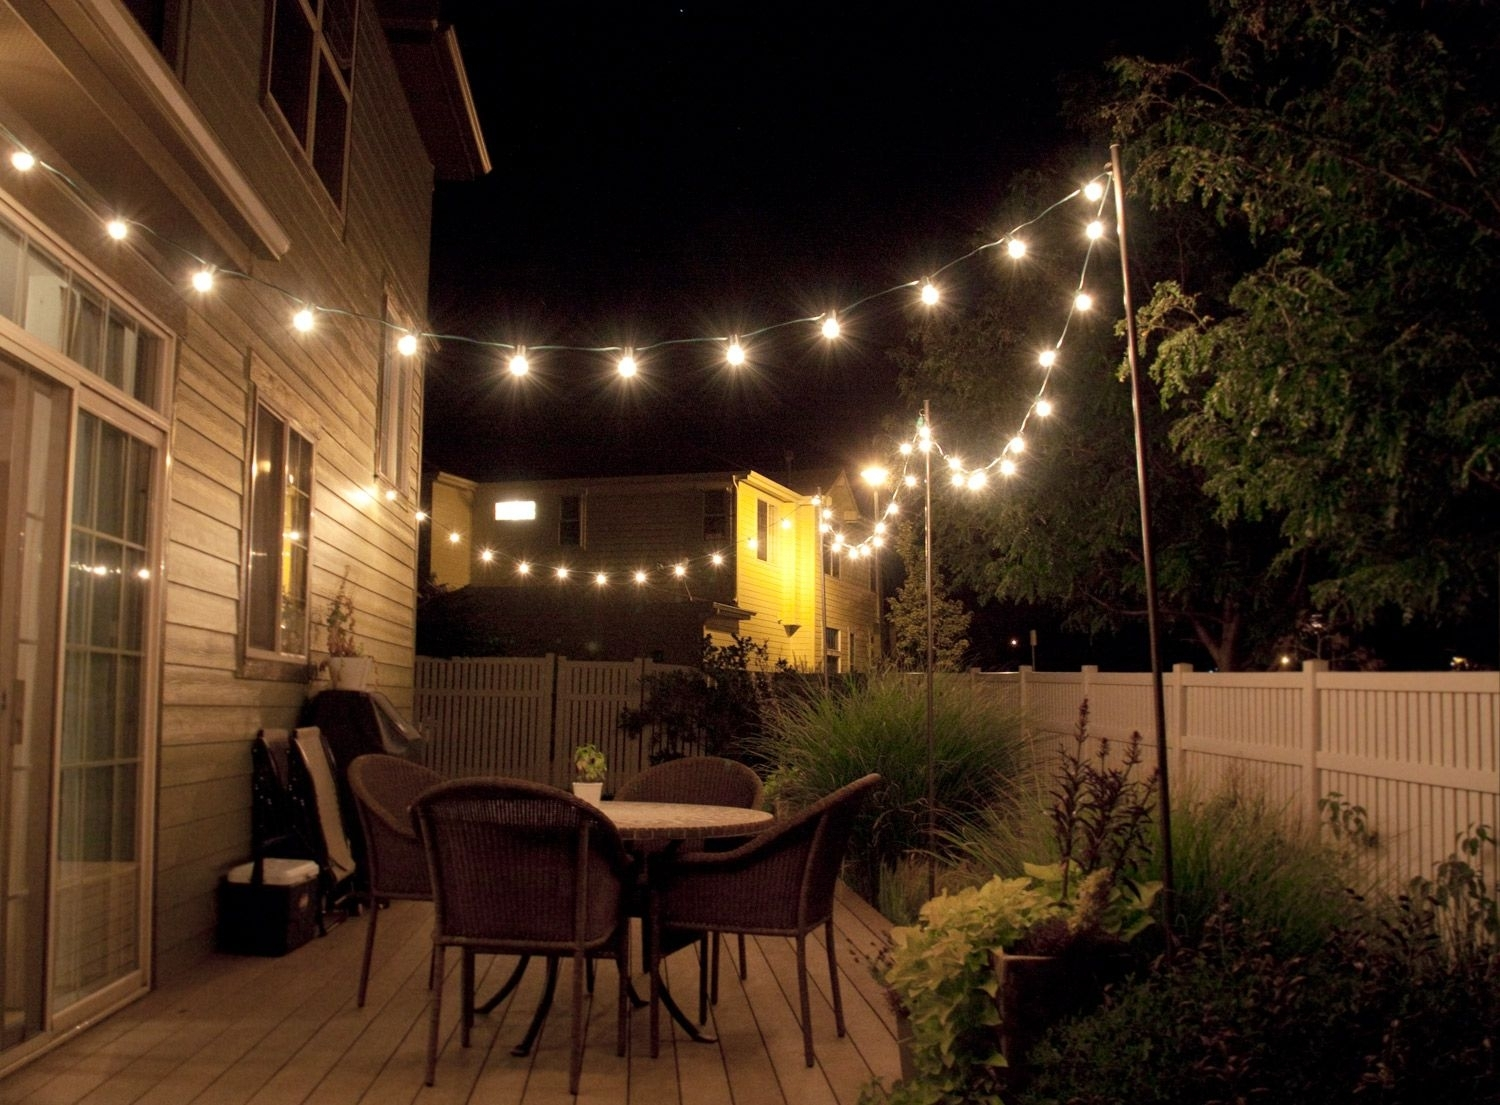 How To Make Inexpensive Poles To Hang String Lights On – Café Style Intended For Hanging Outdoor Lights On Brick (#14 of 15)